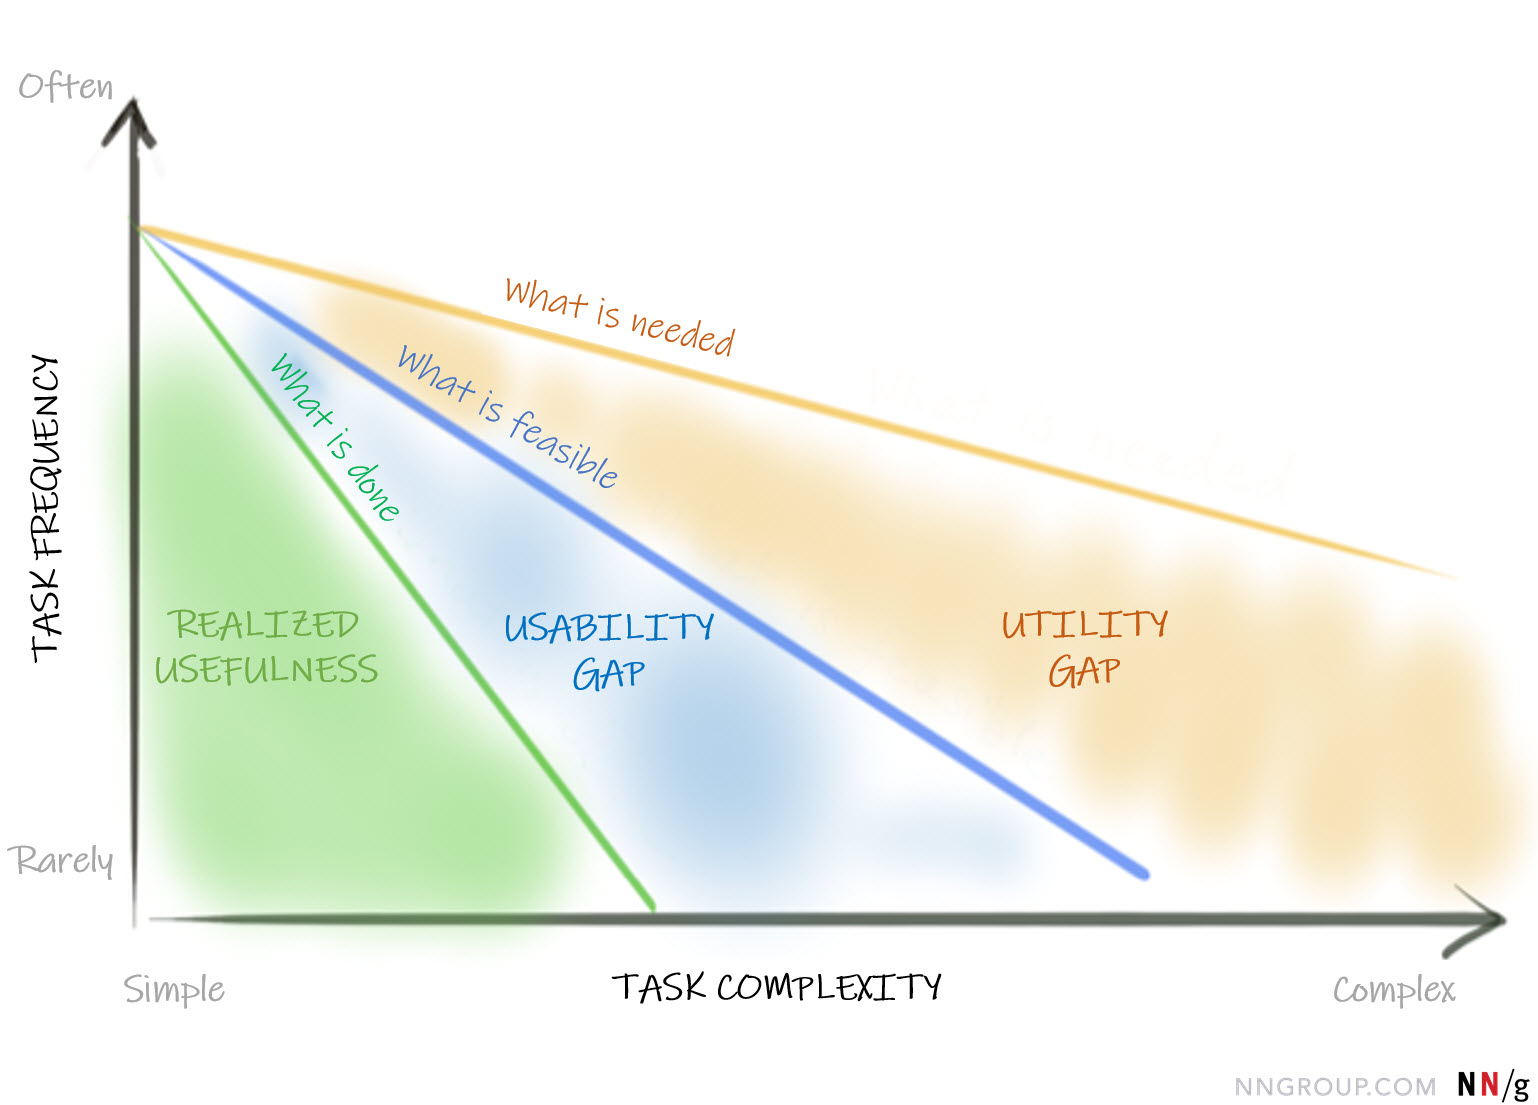 Hand-drawn chart that shows two axes: task complexity is the x axis (from simple to complex), task frequency is the y axis (from rarely to often).